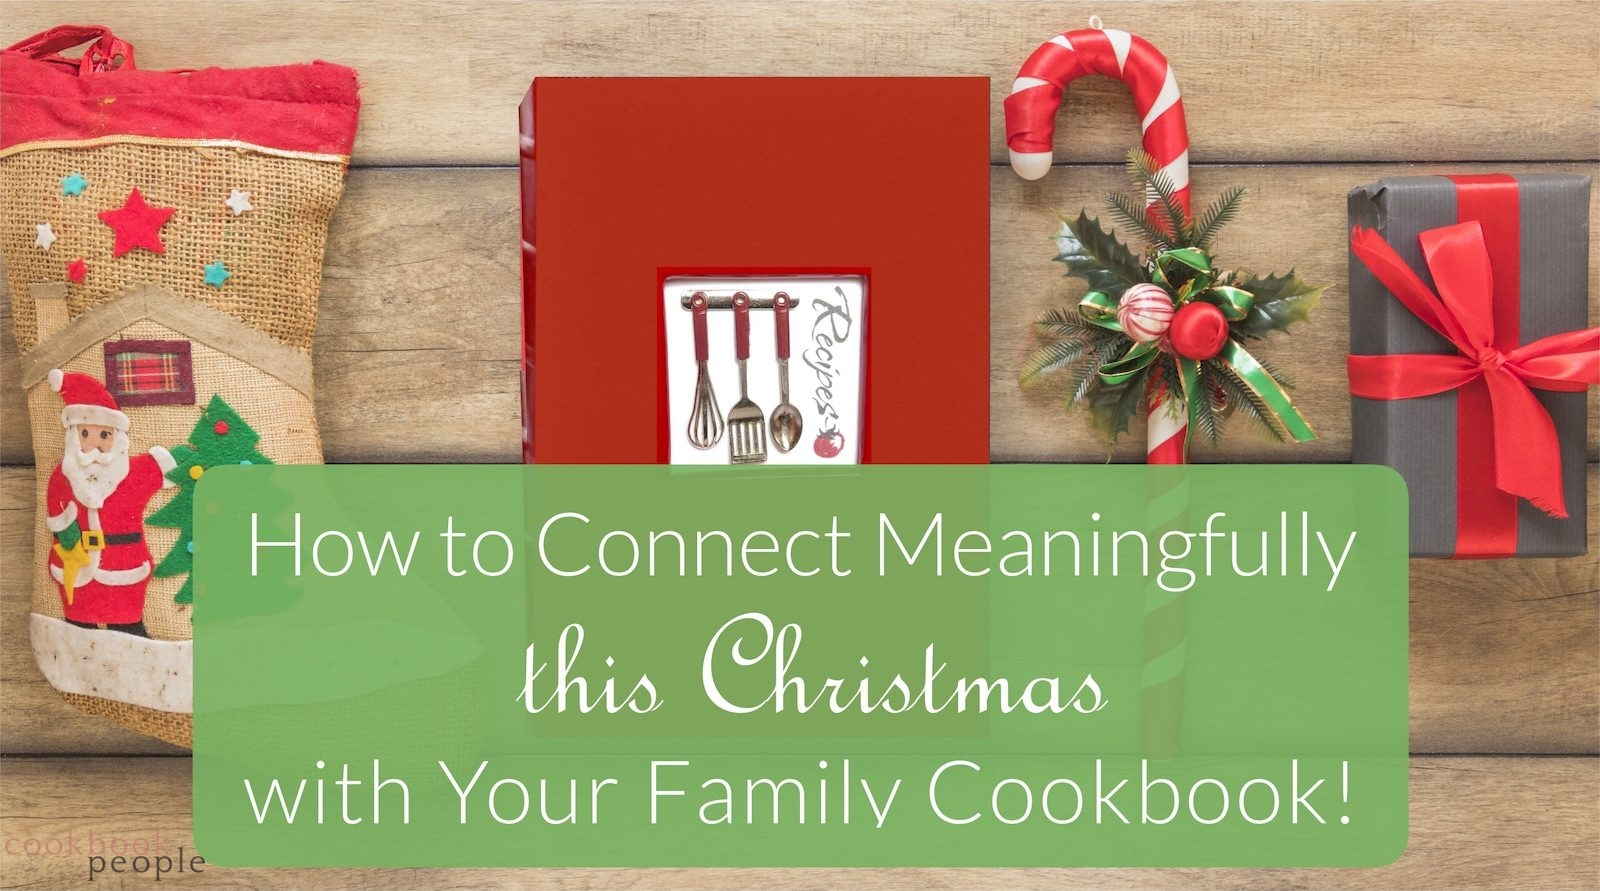 Xmas stocking, recipe book, and gift with text: How to Connect Meaningfully This Christmas - with Your Family Cookbook